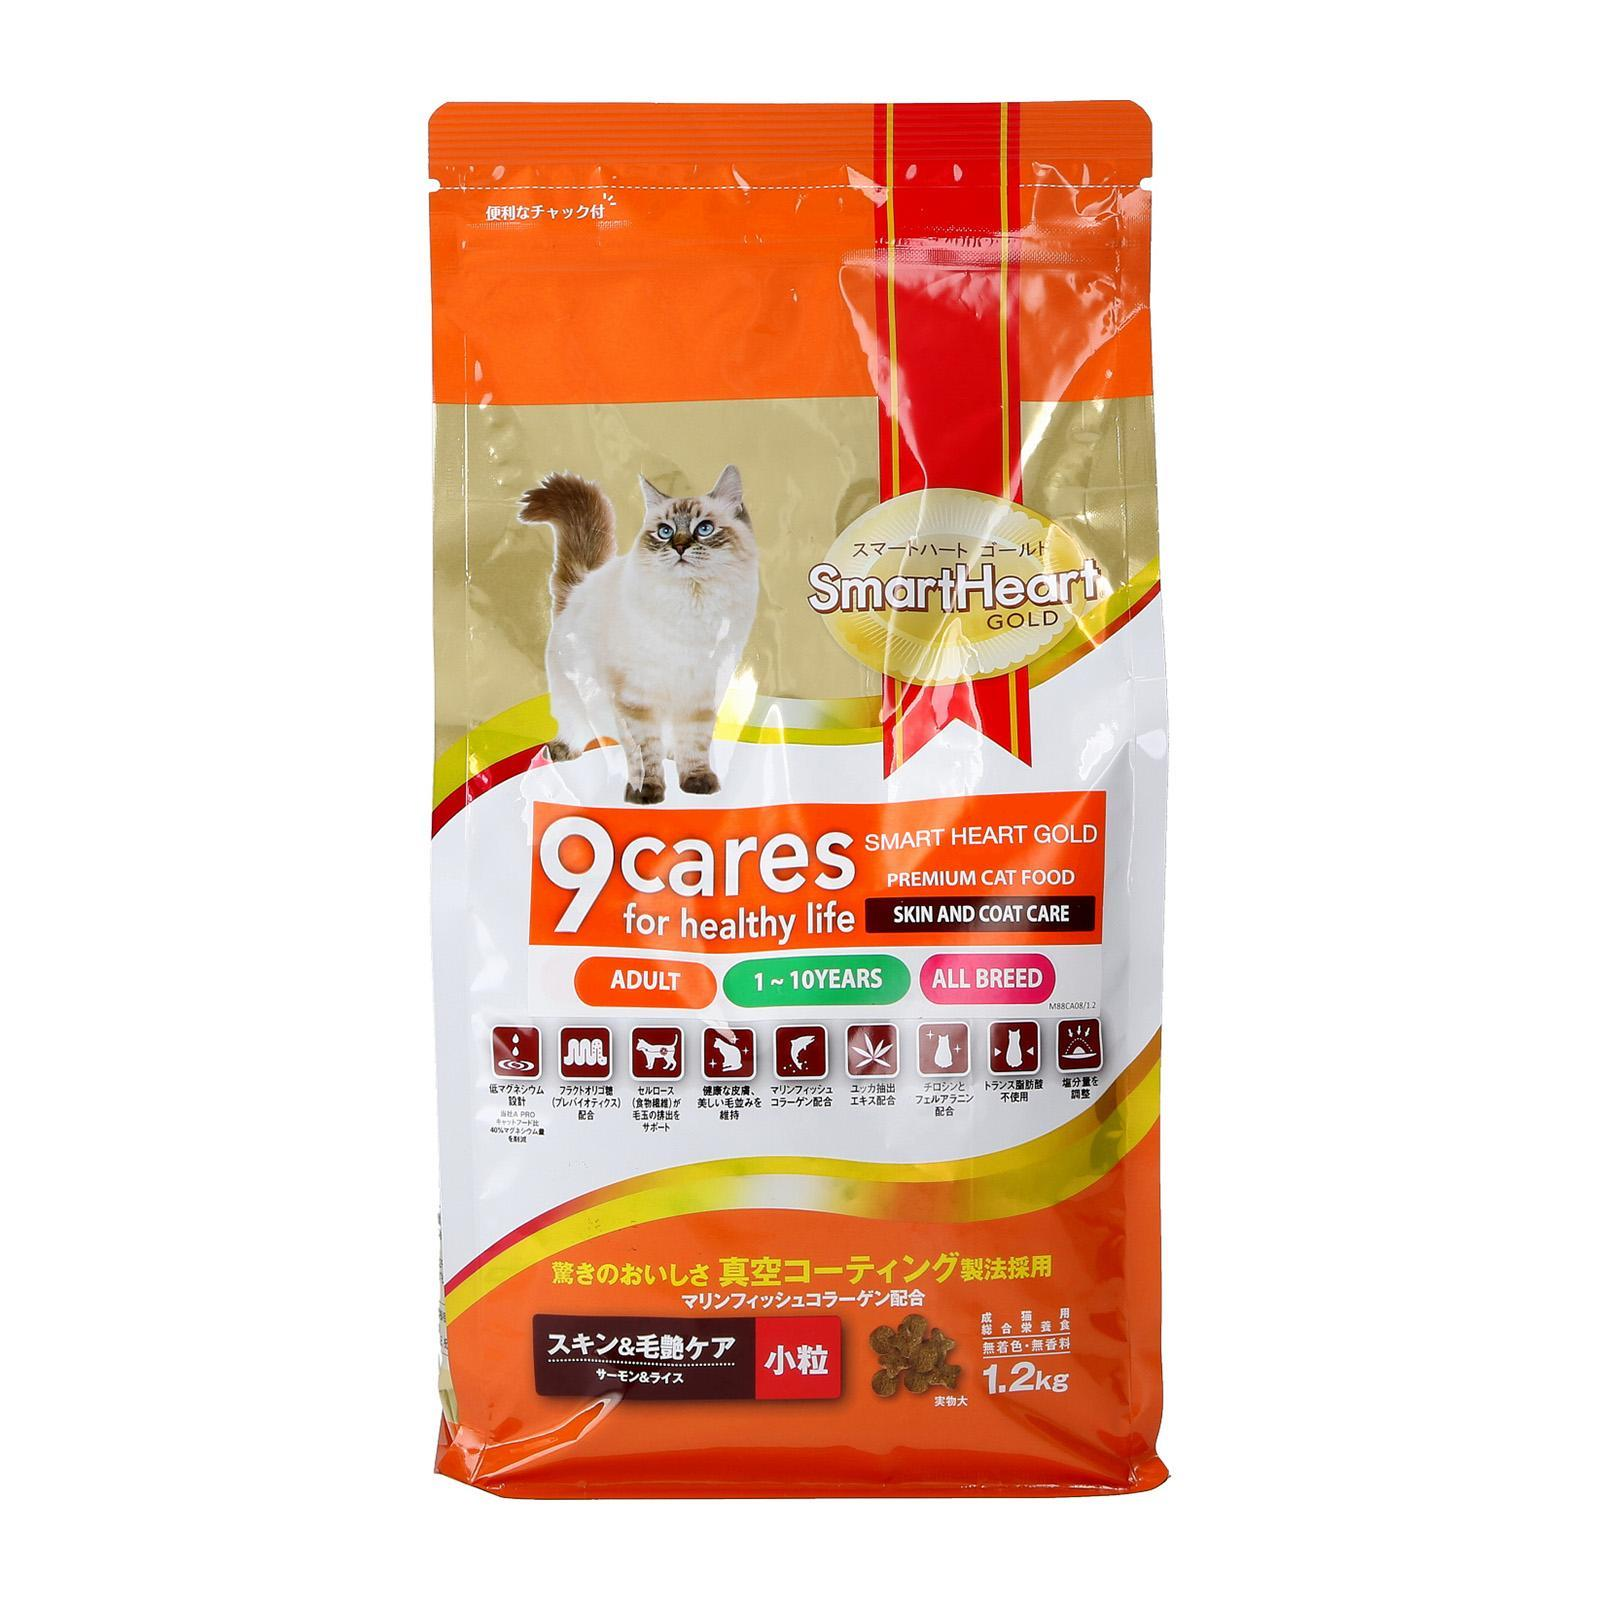 SmartHeart Gold 9 Cares Dry Cat Food Skin And Coat (Salmon And Rice Flavour)